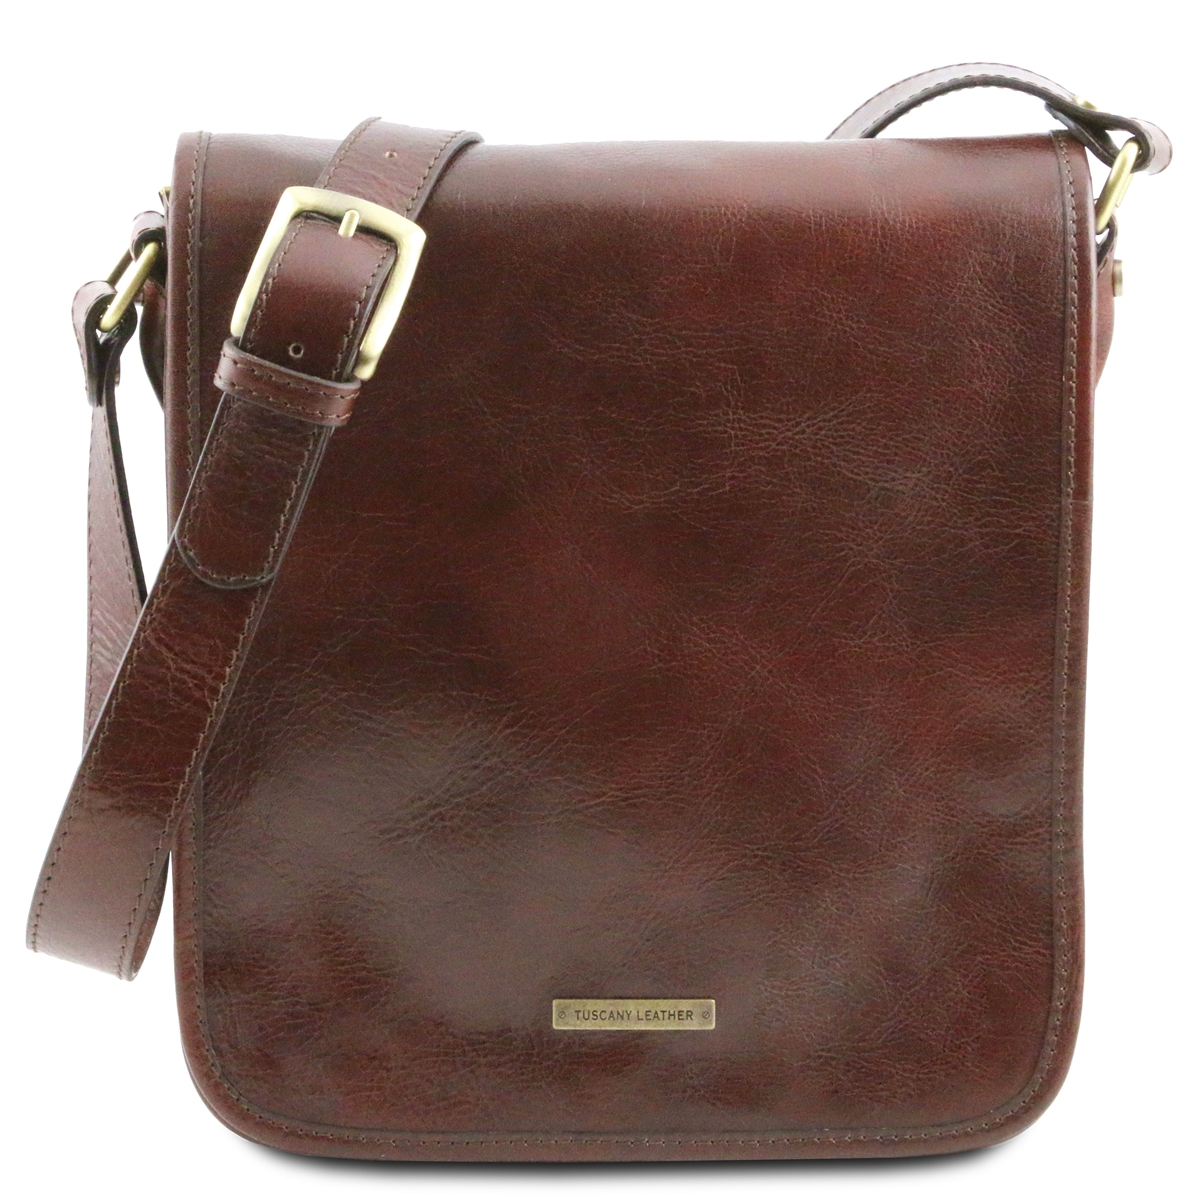 8964dfb04cfa Tuscany Leather TL141255 Men s Messenger Bag - Small - Brown